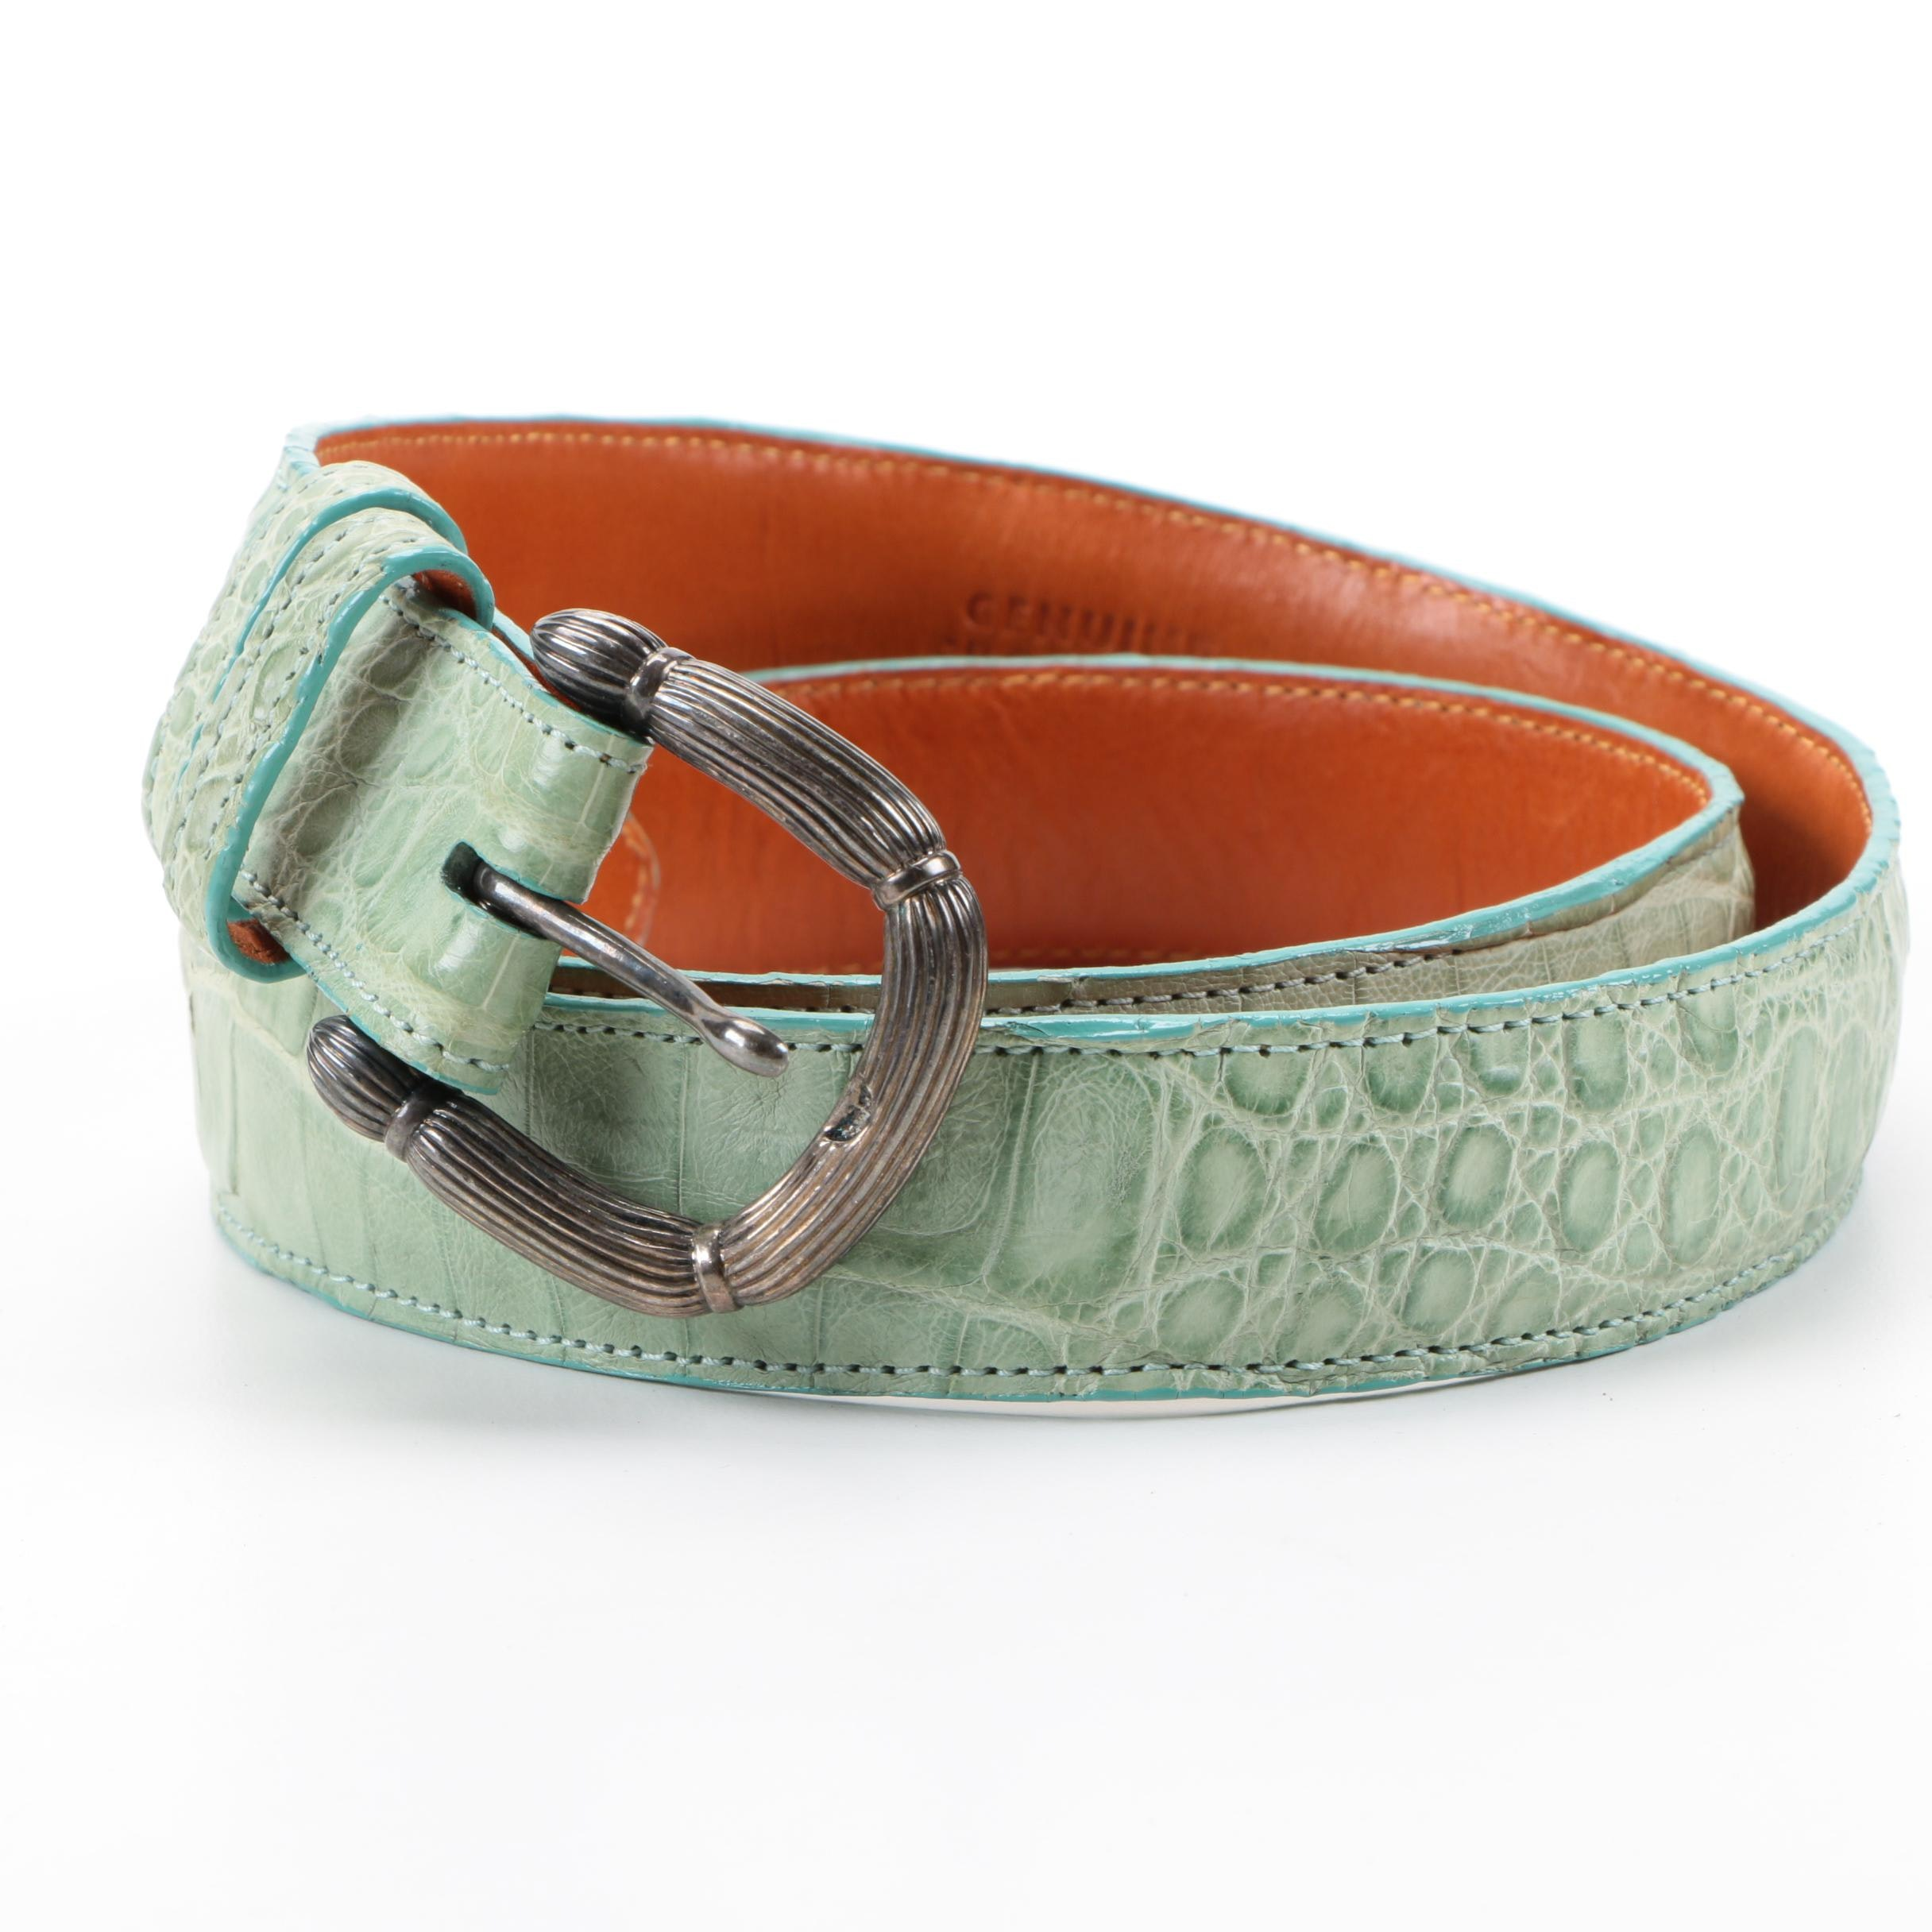 LAI Sterling Silver and Crocodile Leather Belt